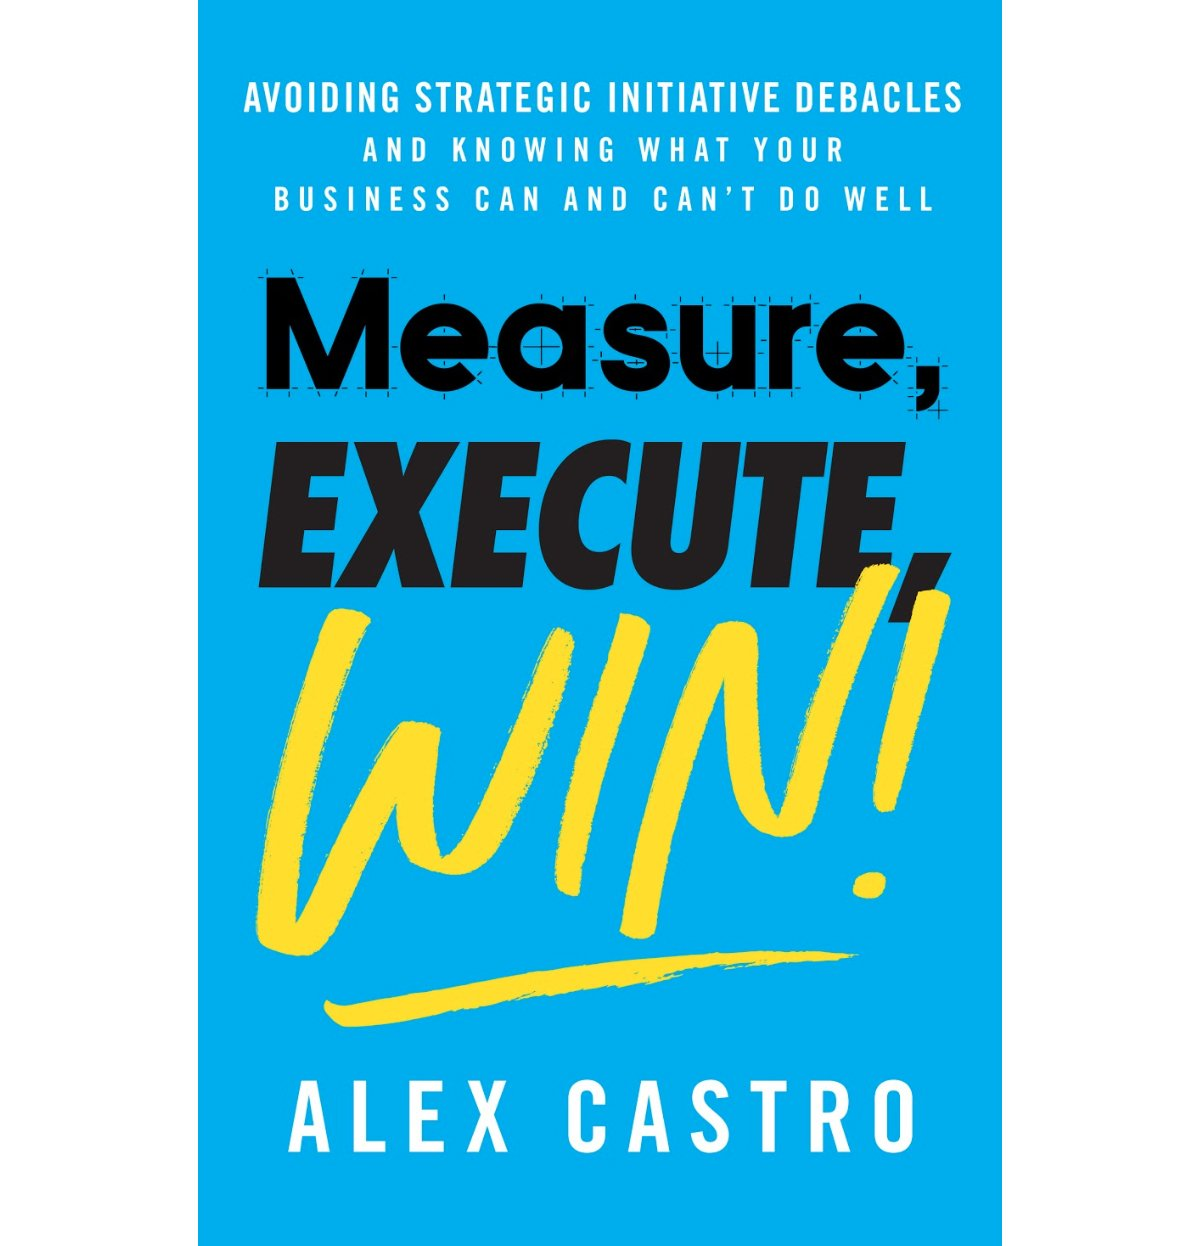 Measure Execute Win